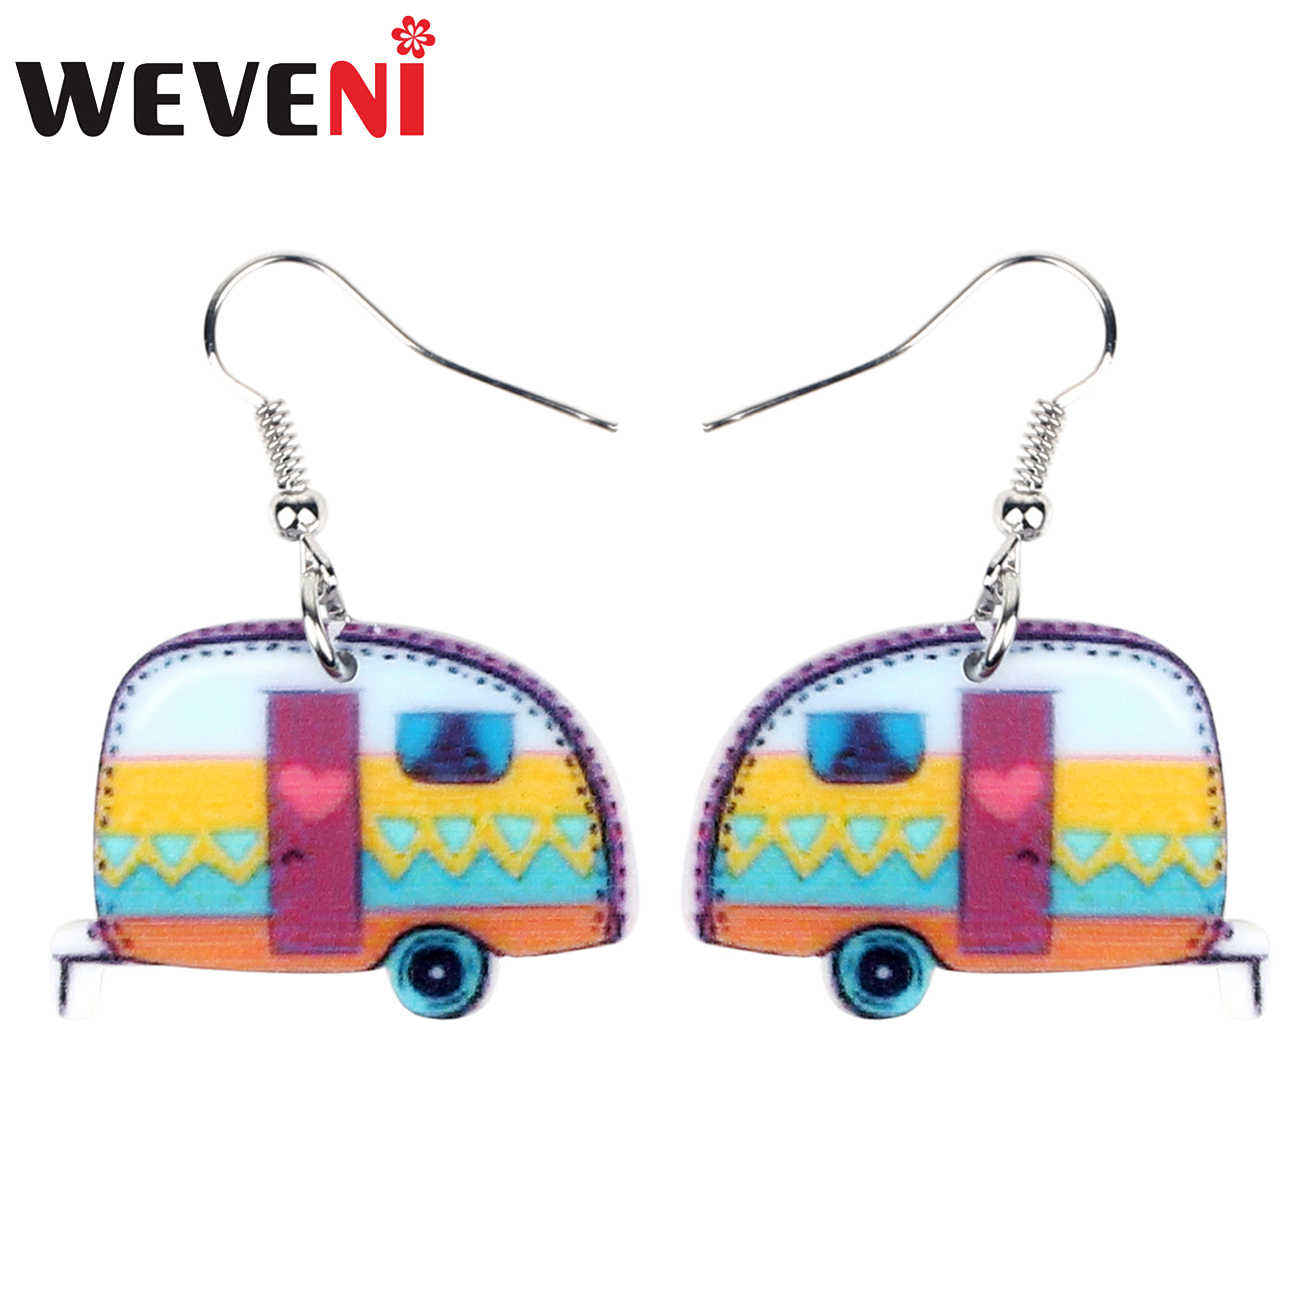 WEVENI Acrylic Colorful Camper Van Car Earrings Drop Dangle Novelty Cute Transportation Jewelry For Women Girls Teen Gift Charms